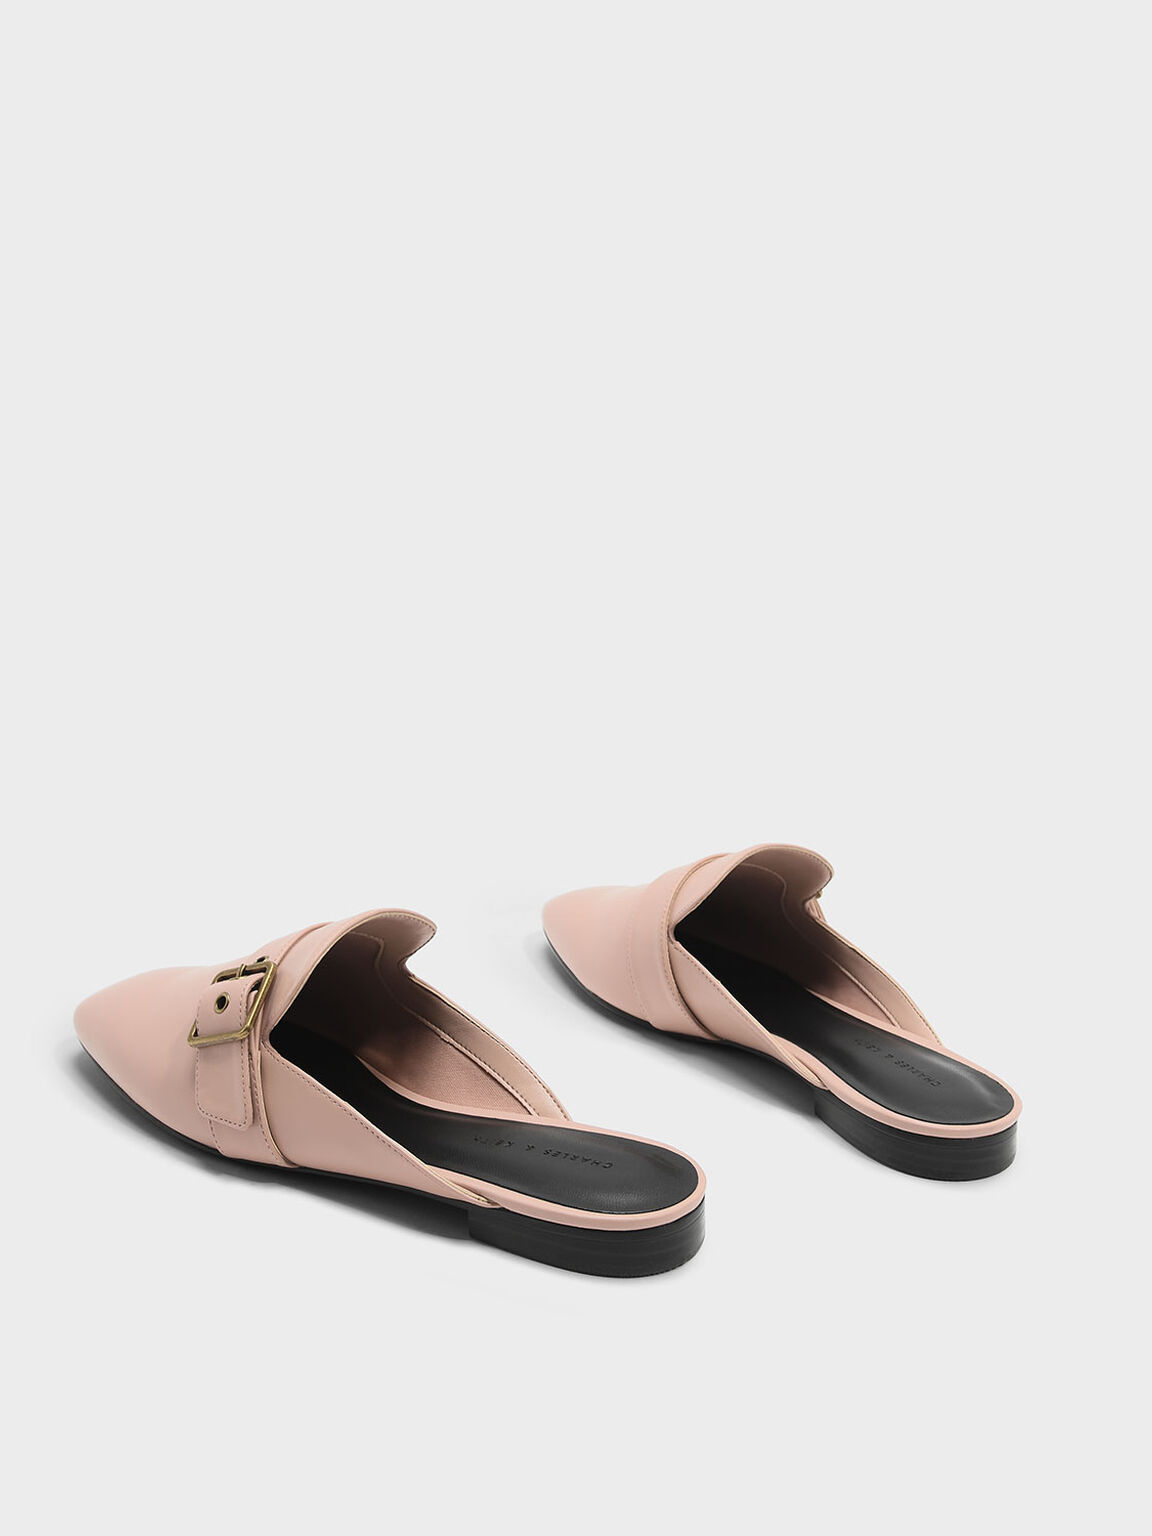 Buckle Flat Mules, Nude, hi-res